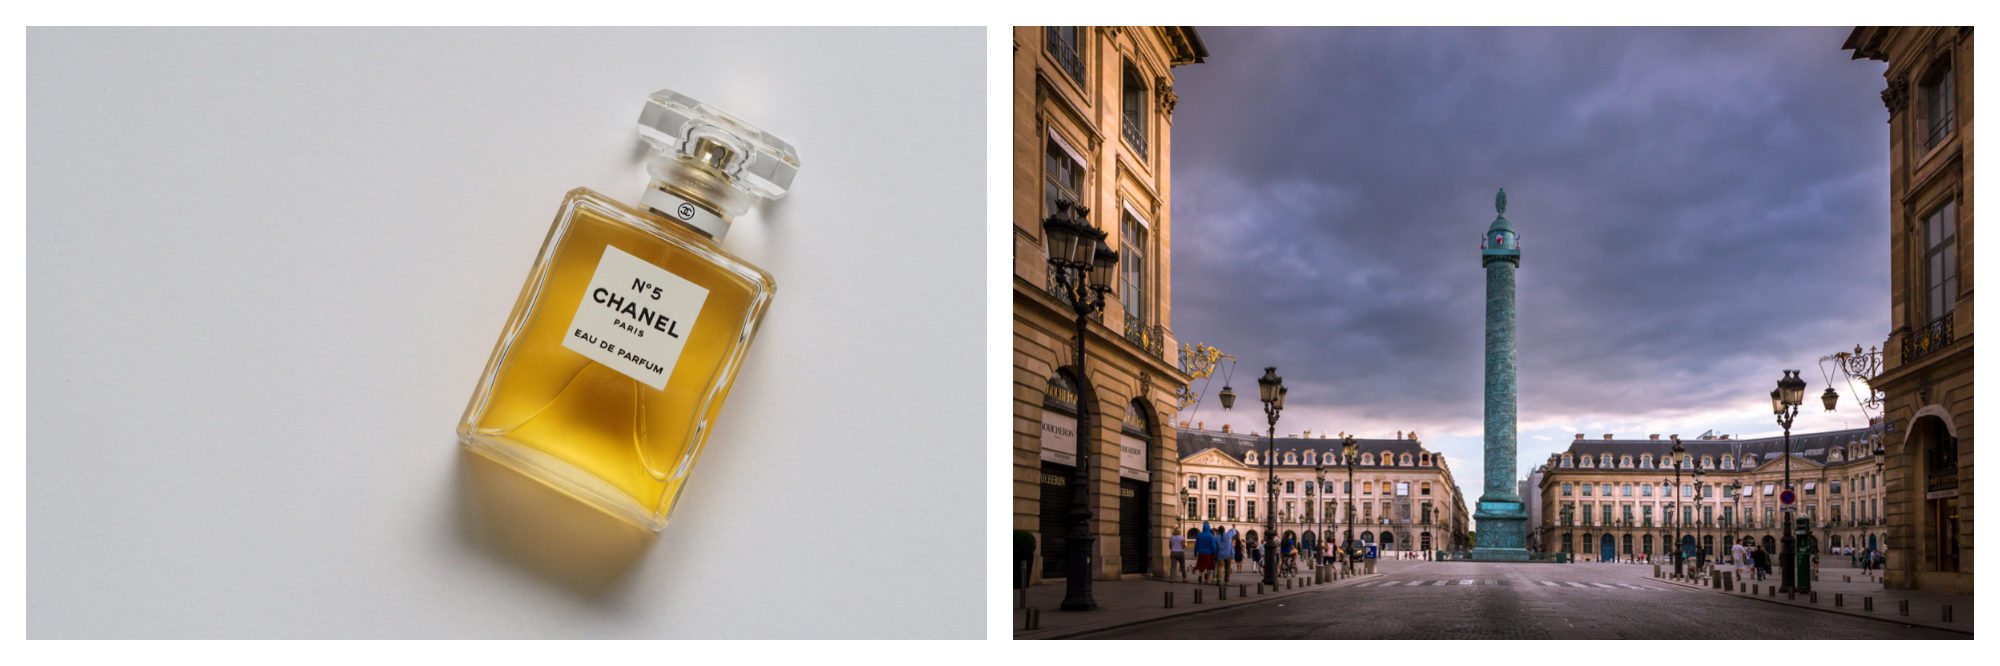 Get the right perfume from Chanel in Paris (left), and the right jewelry from iconic Place Vendome (right).